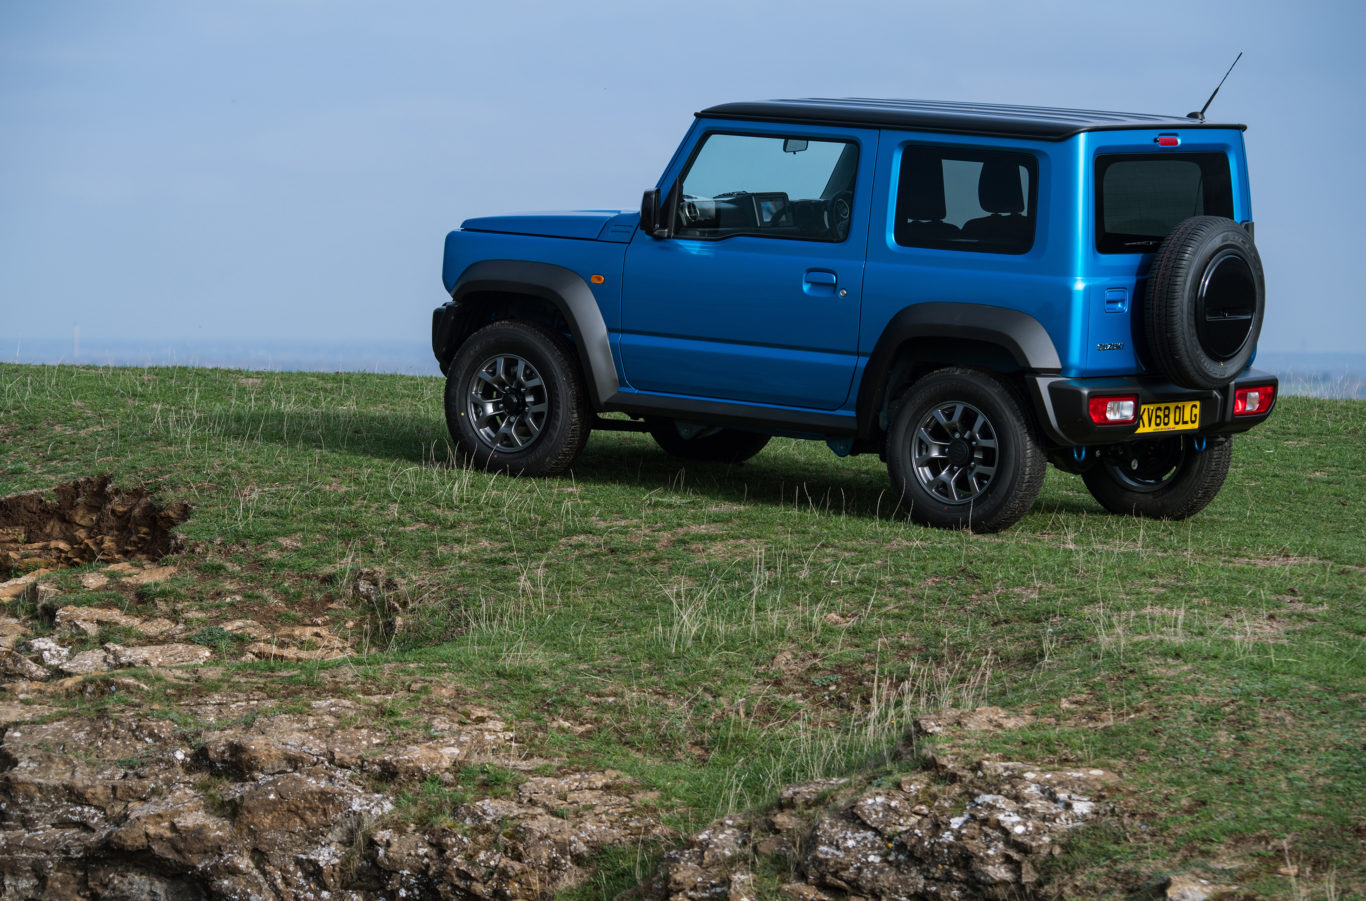 The new Jimny comes with a wealth of standard equipment